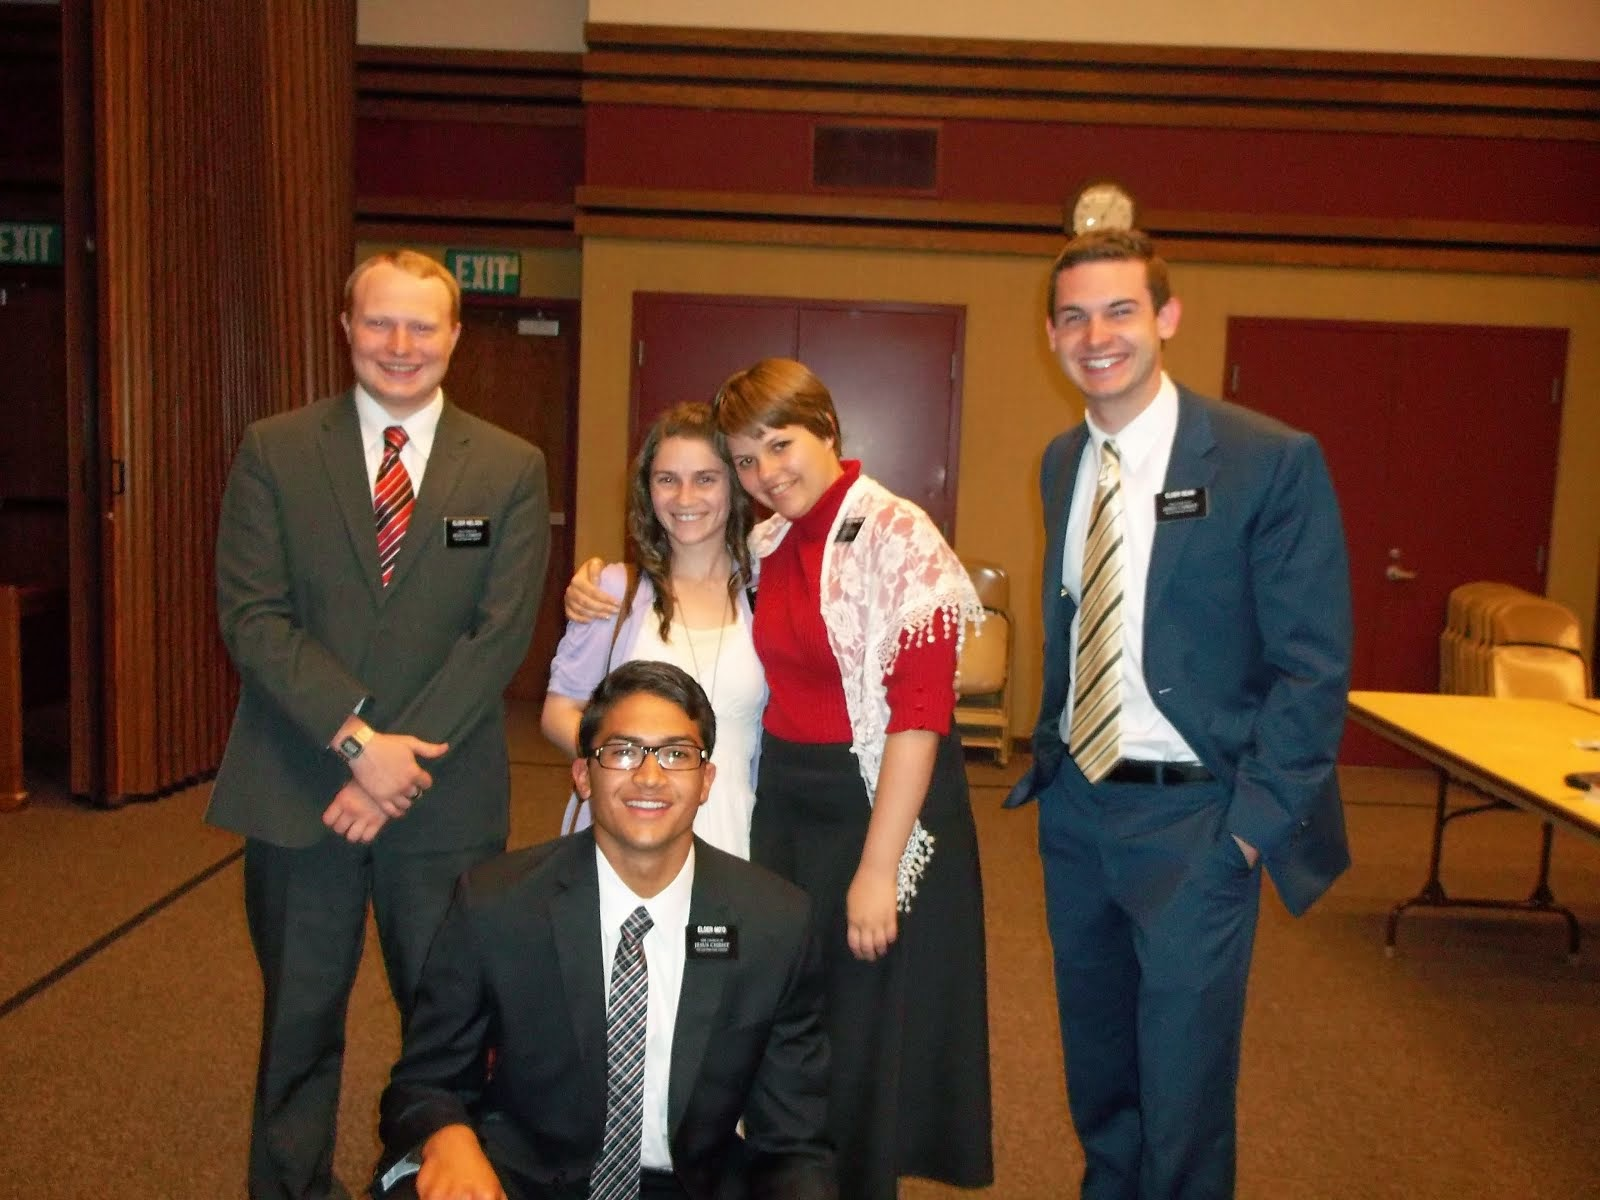 More Missionary Pictures